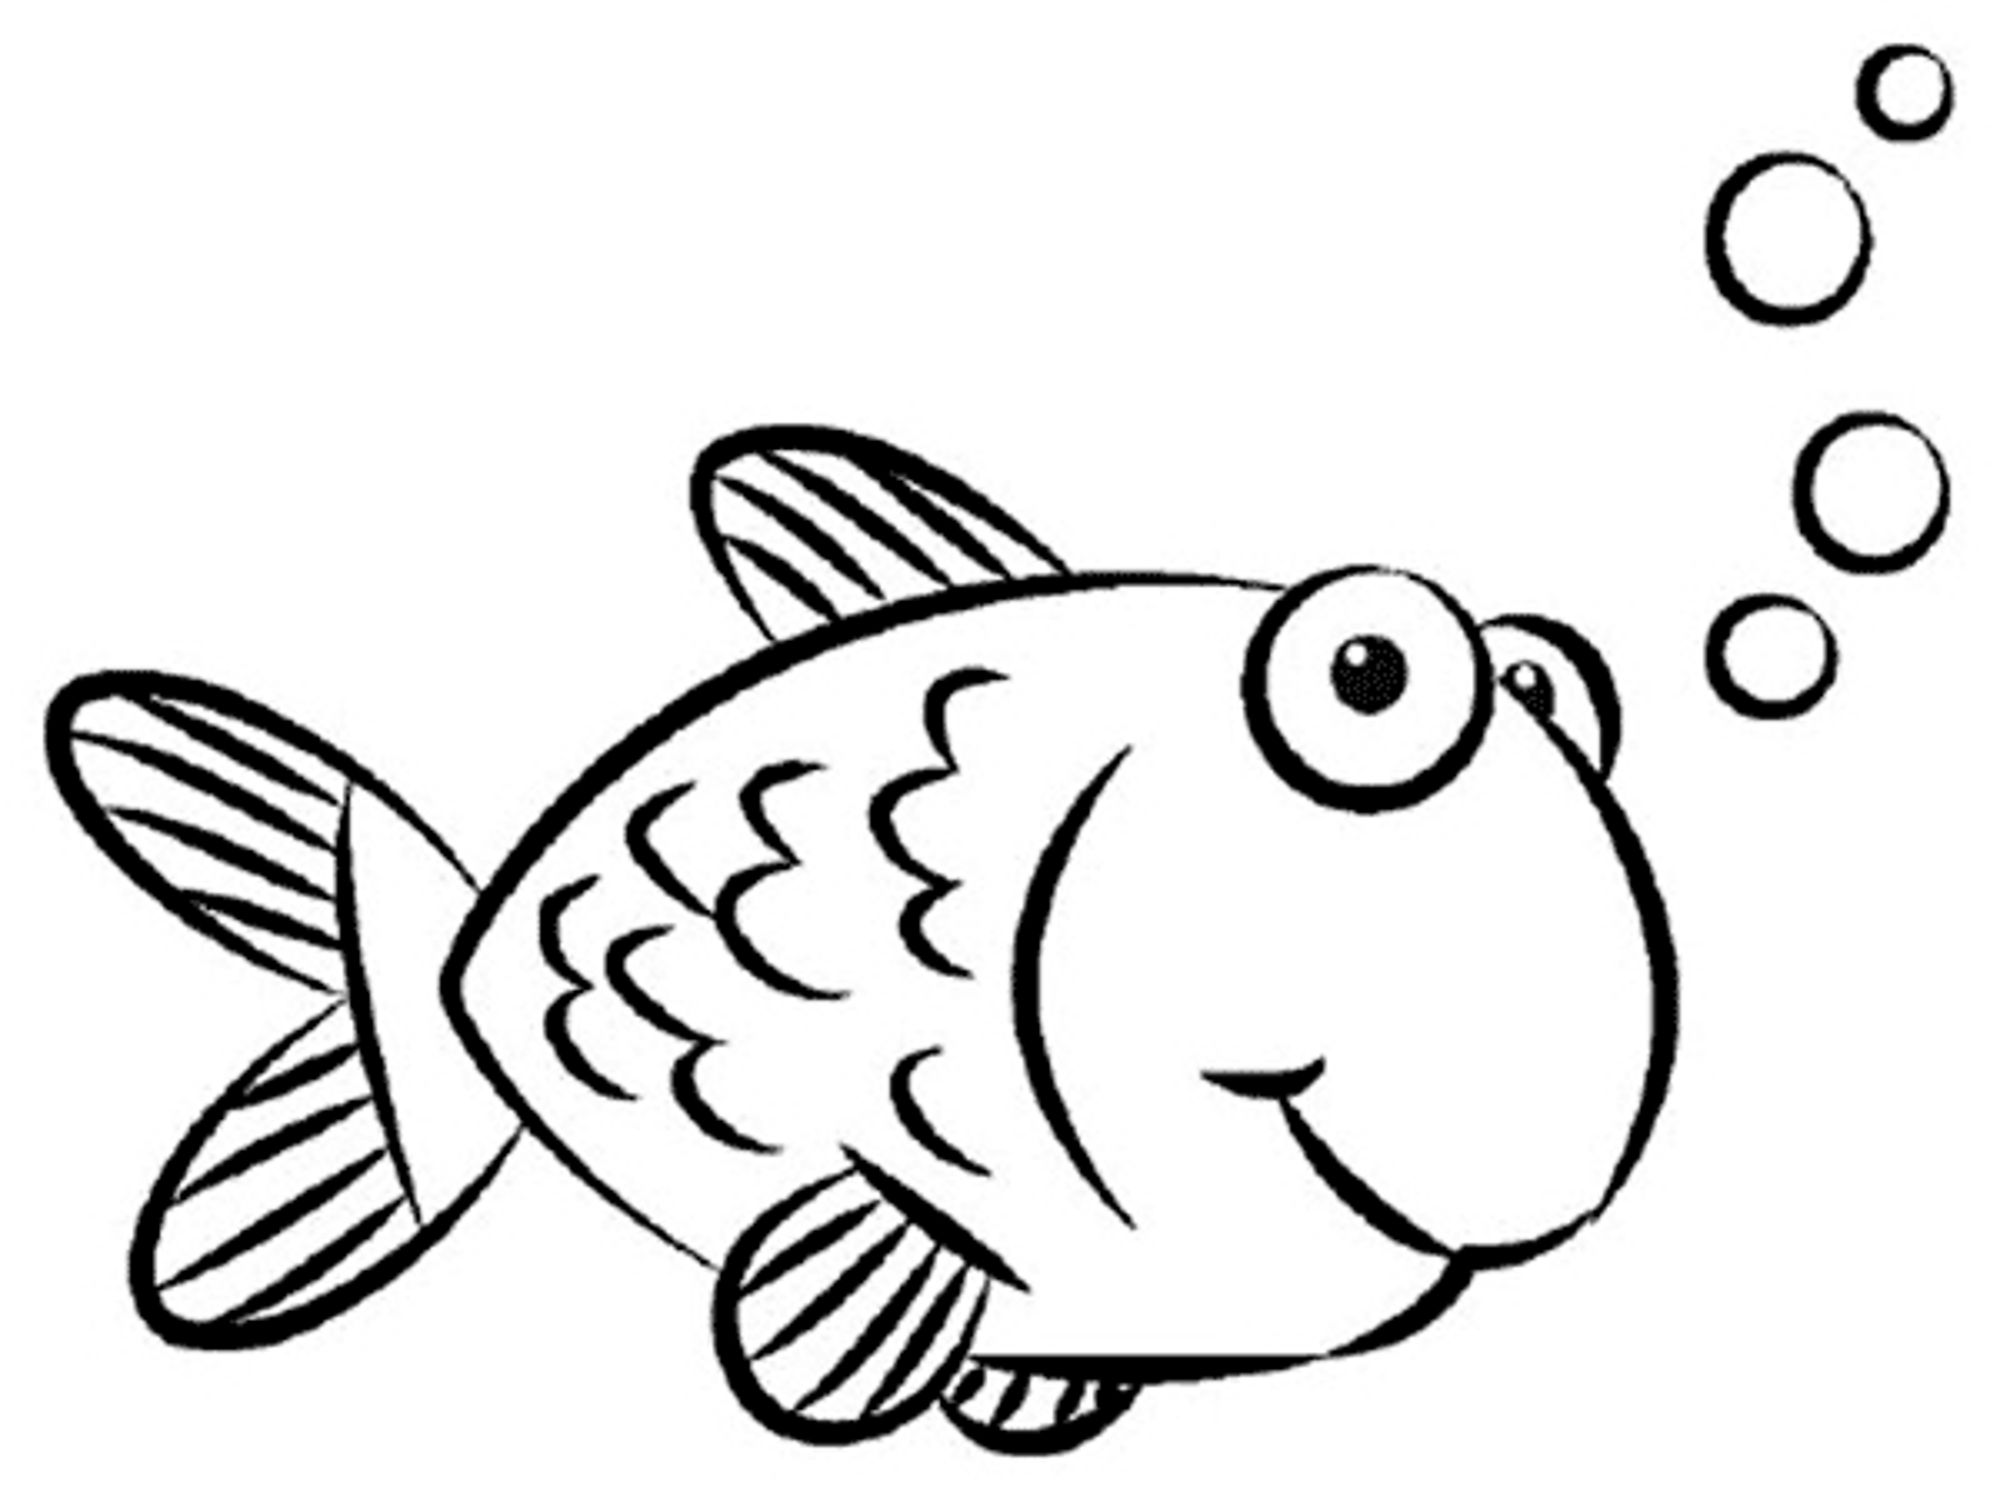 2000x1510 Simple Coloring Pages To Print Vitlt For Kids Free Book Printable